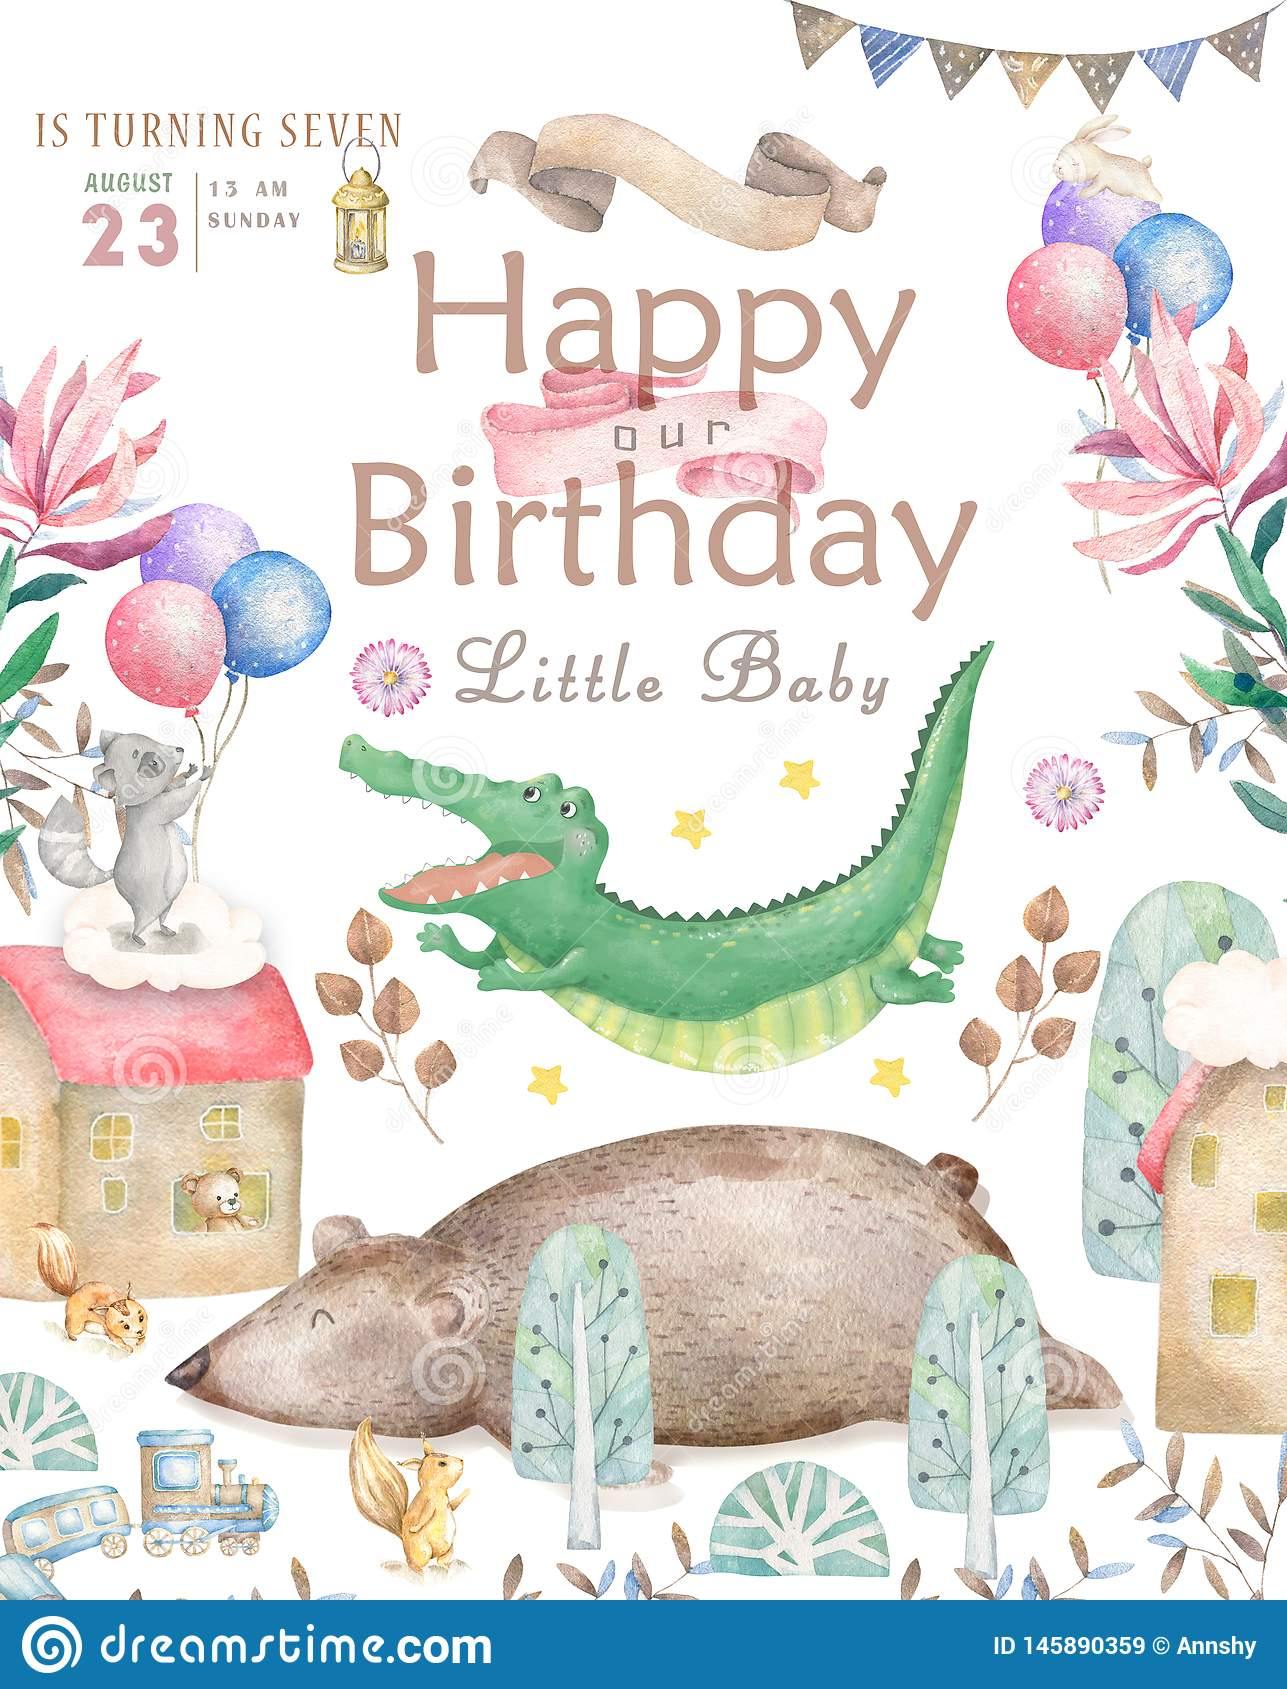 Happy Birthday Card With Cute Croc Dandy Watercolor Animal Cute Baby Greeting Card Boho Flowers And Floral Bouquets Stock Illustration Illustration Of Carnival Congratulation 145890359